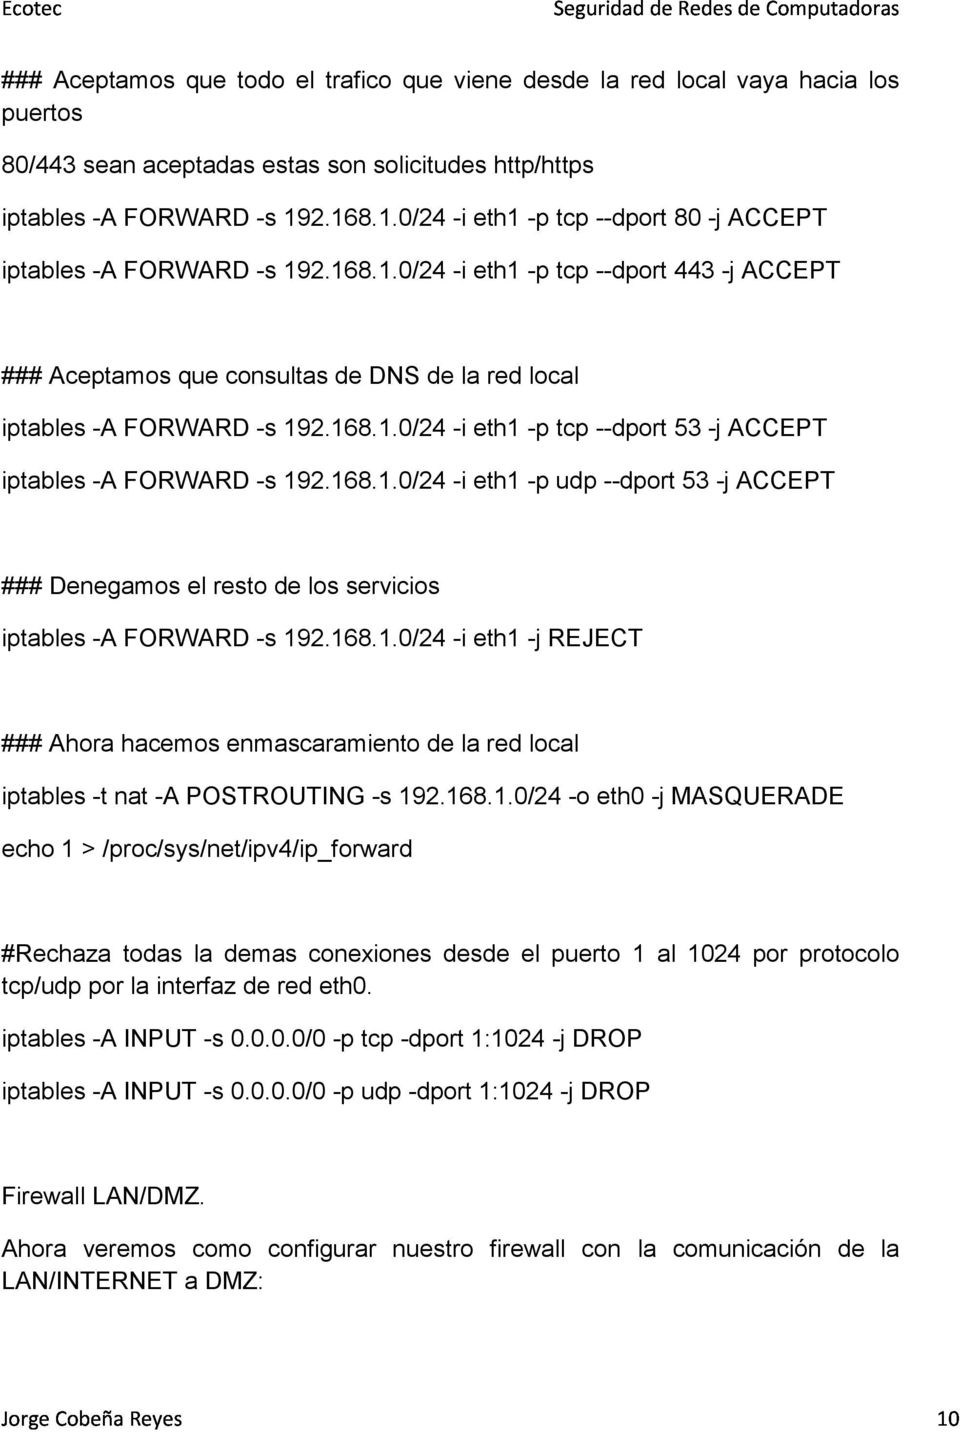 168.1.0/24 -i eth1 -p tcp --dport 53 -j ACCEPT iptables -A FORWARD -s 192.168.1.0/24 -i eth1 -p udp --dport 53 -j ACCEPT ### Denegamos el resto de los servicios iptables -A FORWARD -s 192.168.1.0/24 -i eth1 -j REJECT ### Ahora hacemos enmascaramiento de la red local iptables -t nat -A POSTROUTING -s 192.